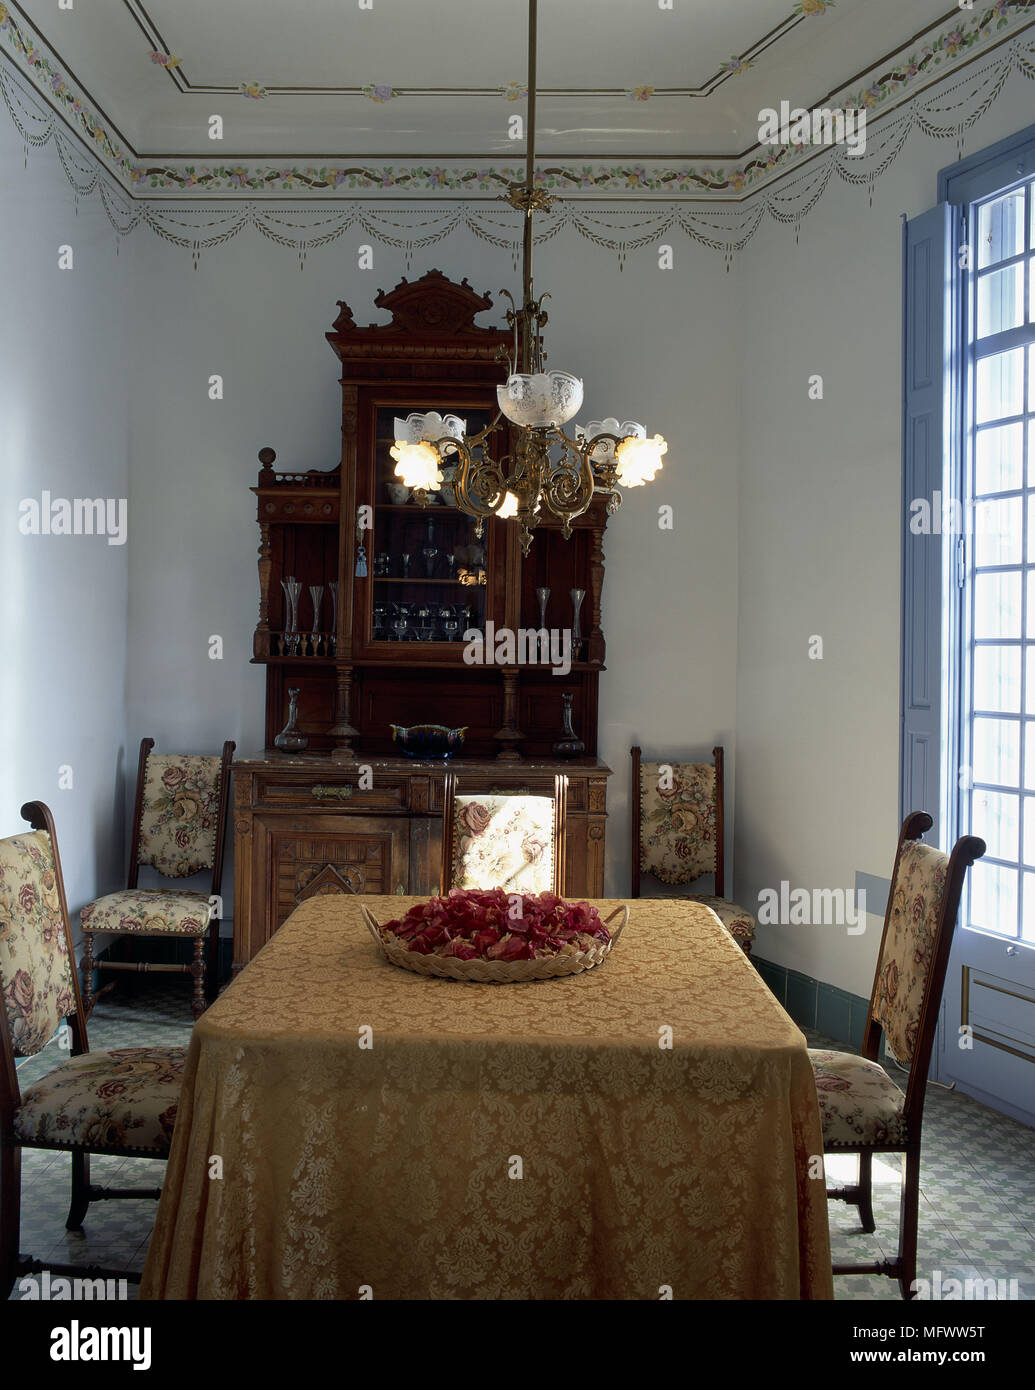 A chandelier stock photos a chandelier stock images alamy view of a chandelier hanging over a dining table stock image arubaitofo Choice Image